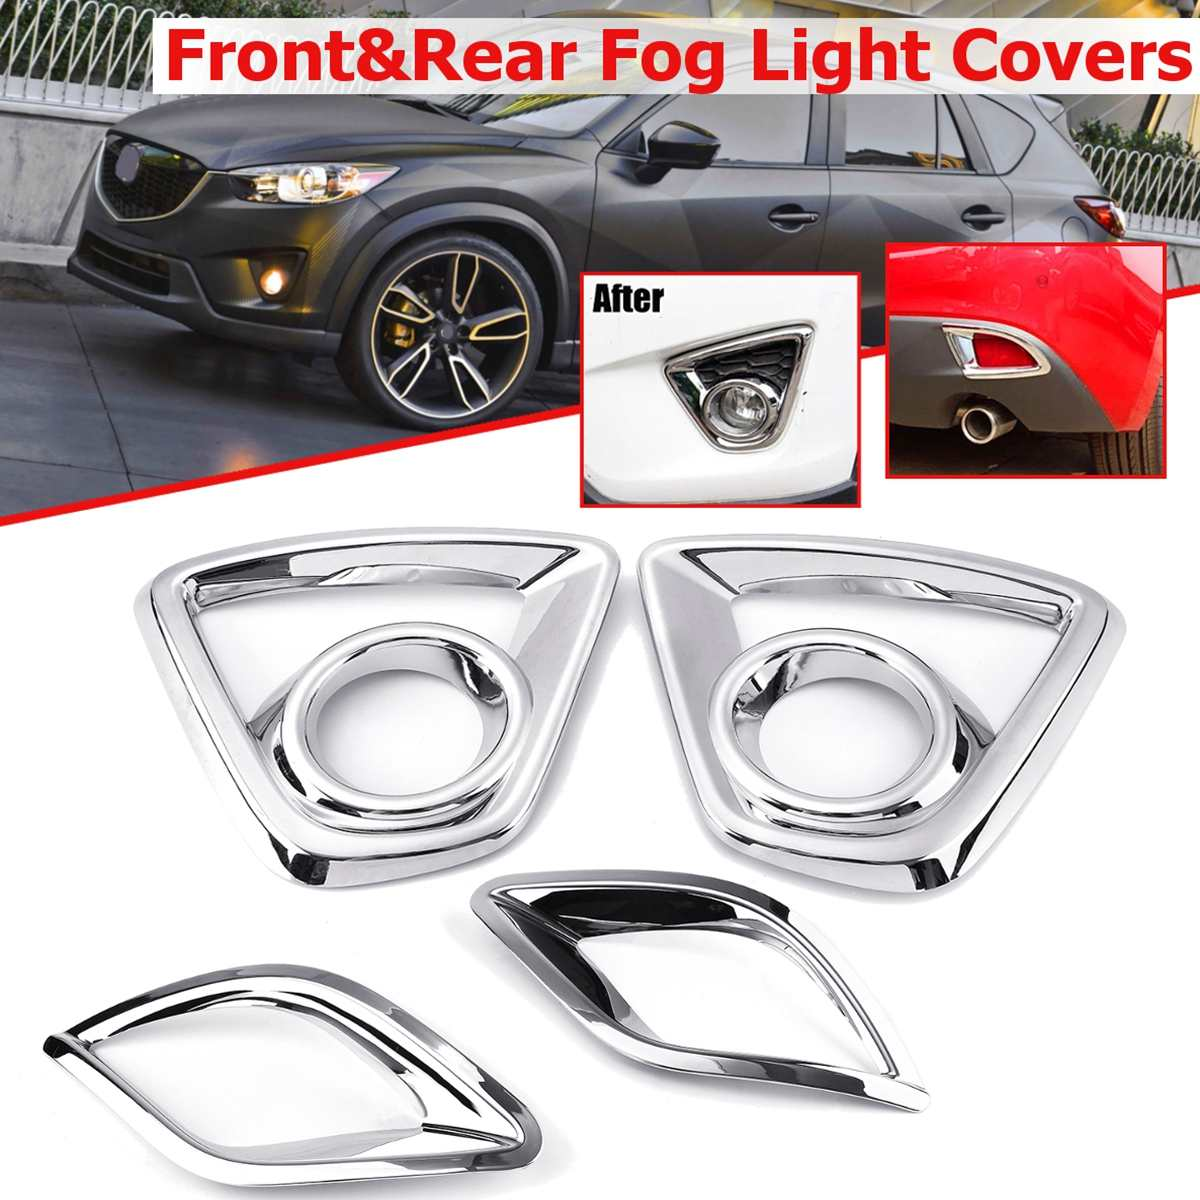 Bumper Fog light Chrome Garnish For Mazda Cx 5 Cx5  2013 2014 2015 2016 Car Rear Tail Lights Lamp Shade Frame Trim Cover Styling-in Chromium Styling from Automobiles & Motorcycles